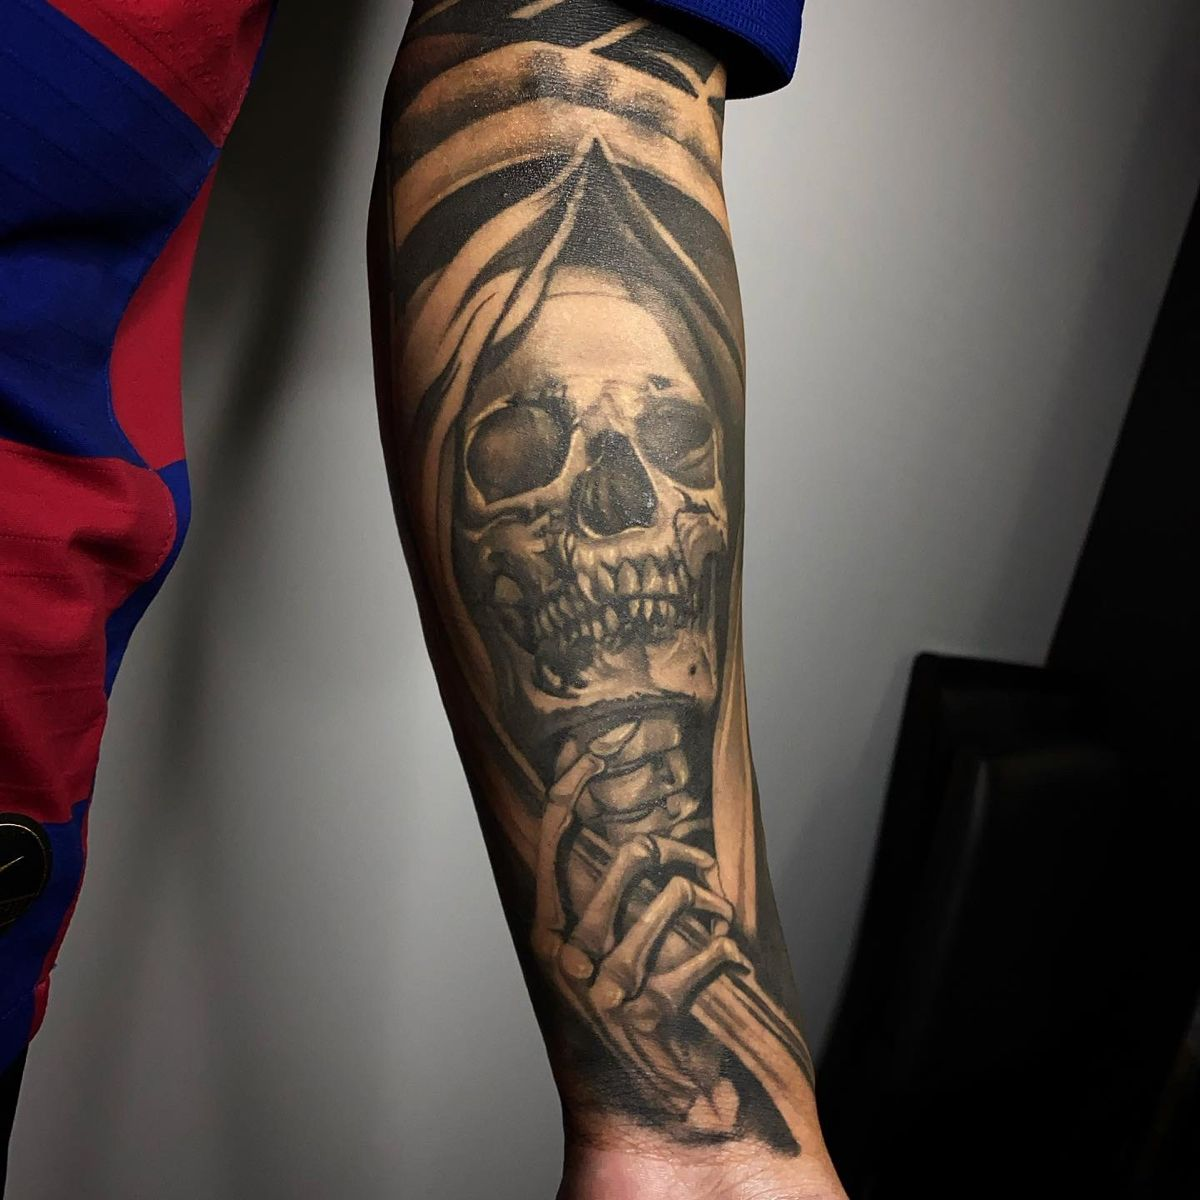 Healed Grim Reaper Tattoo in 2020 Cool tattoos for guys